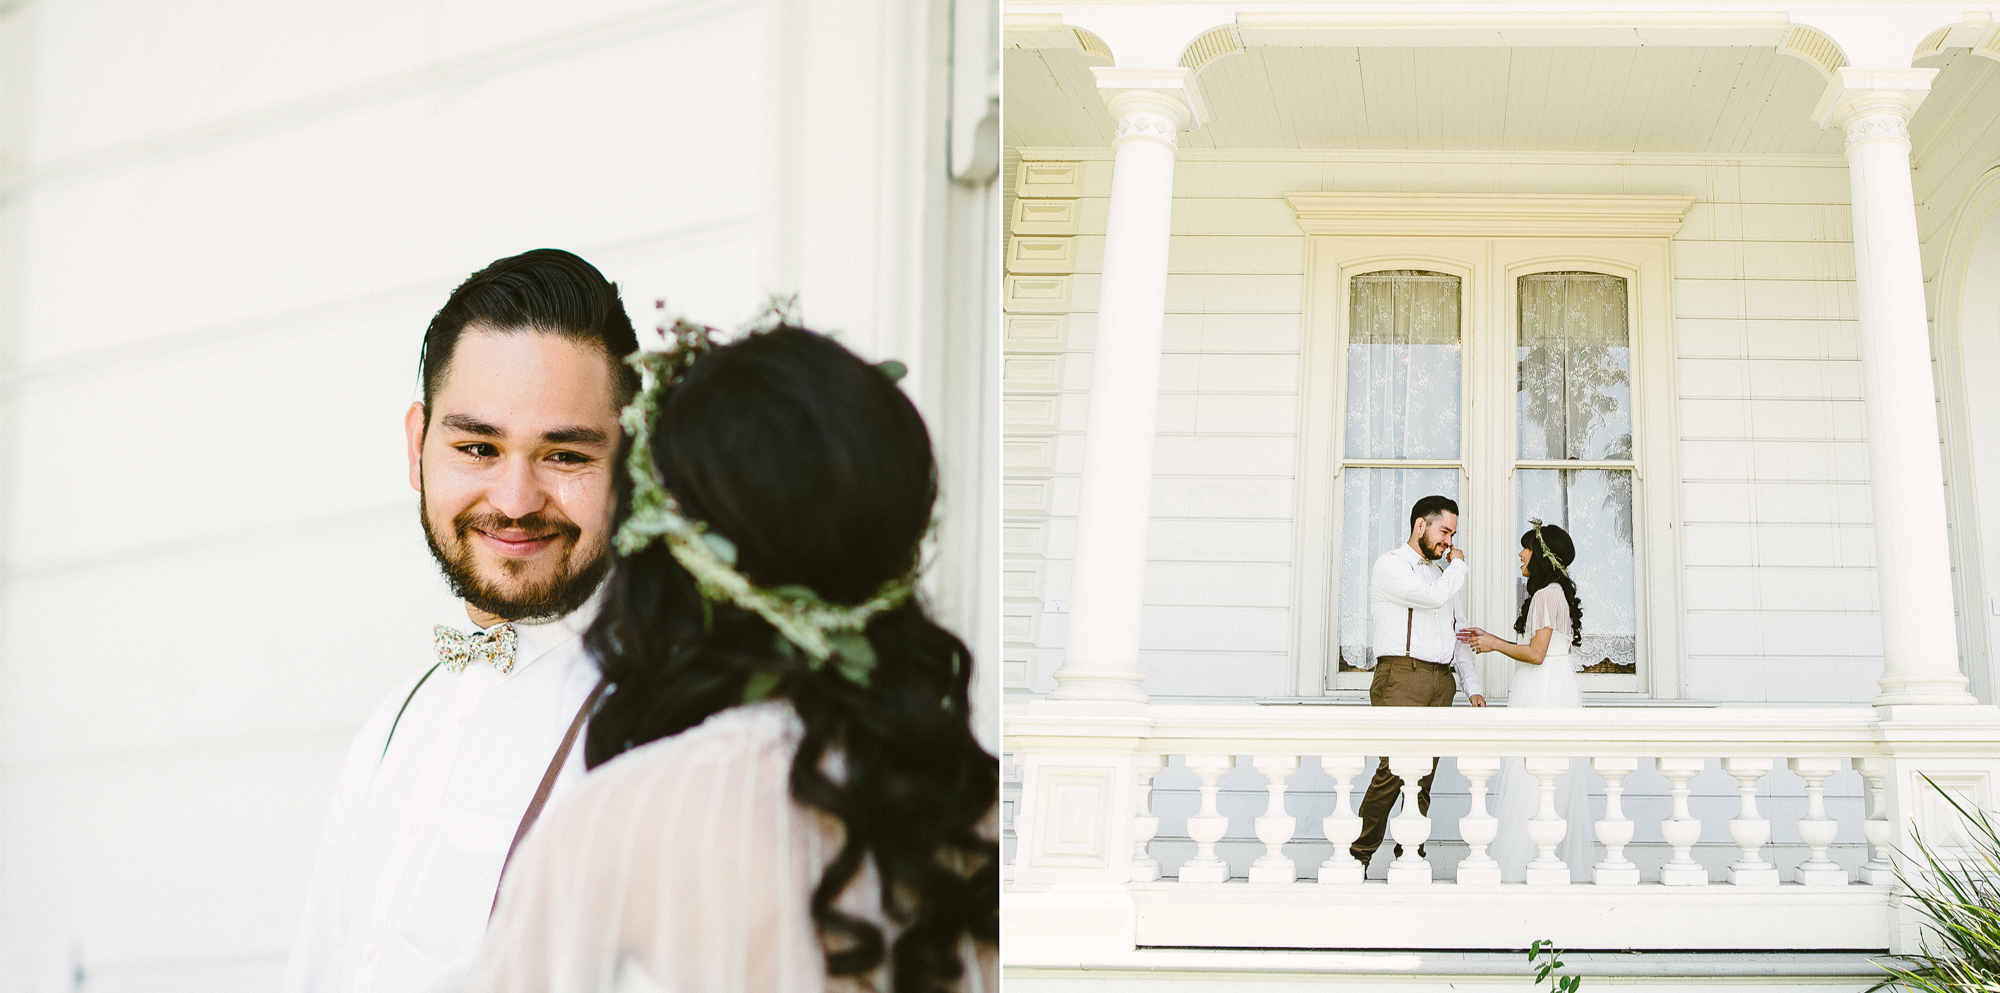 Isaiah & Taylor Photography - Los Angeles - Destination Wedding Photographers - Heritage Square Museum -32.jpg